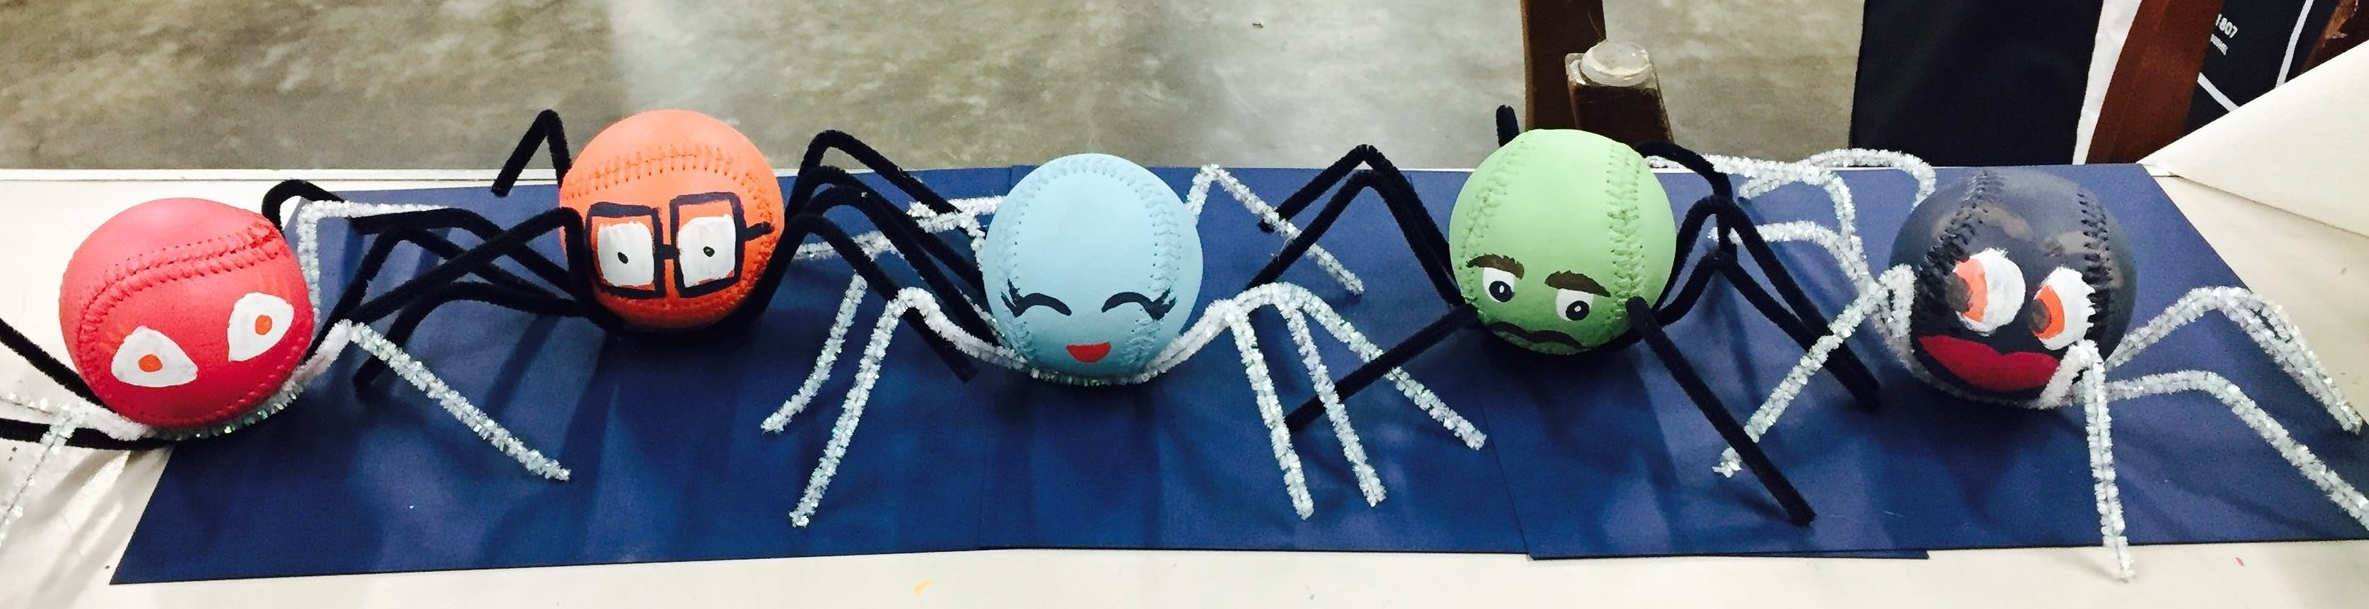 DIY Halloween Spiders 1.jpg